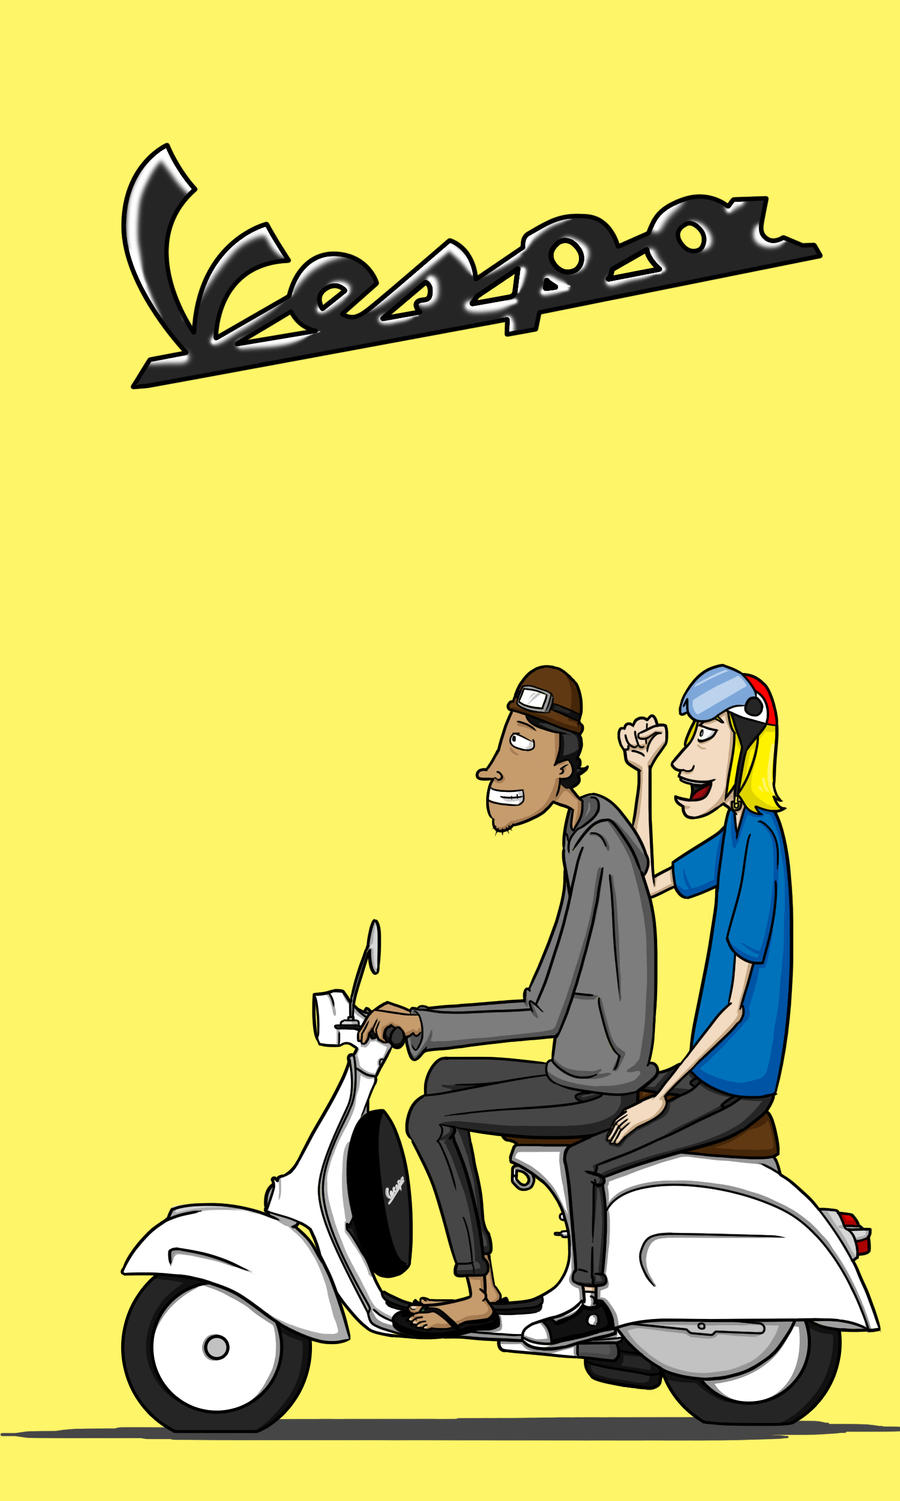 Vespa Cartoon Images & Pictures - Becuo